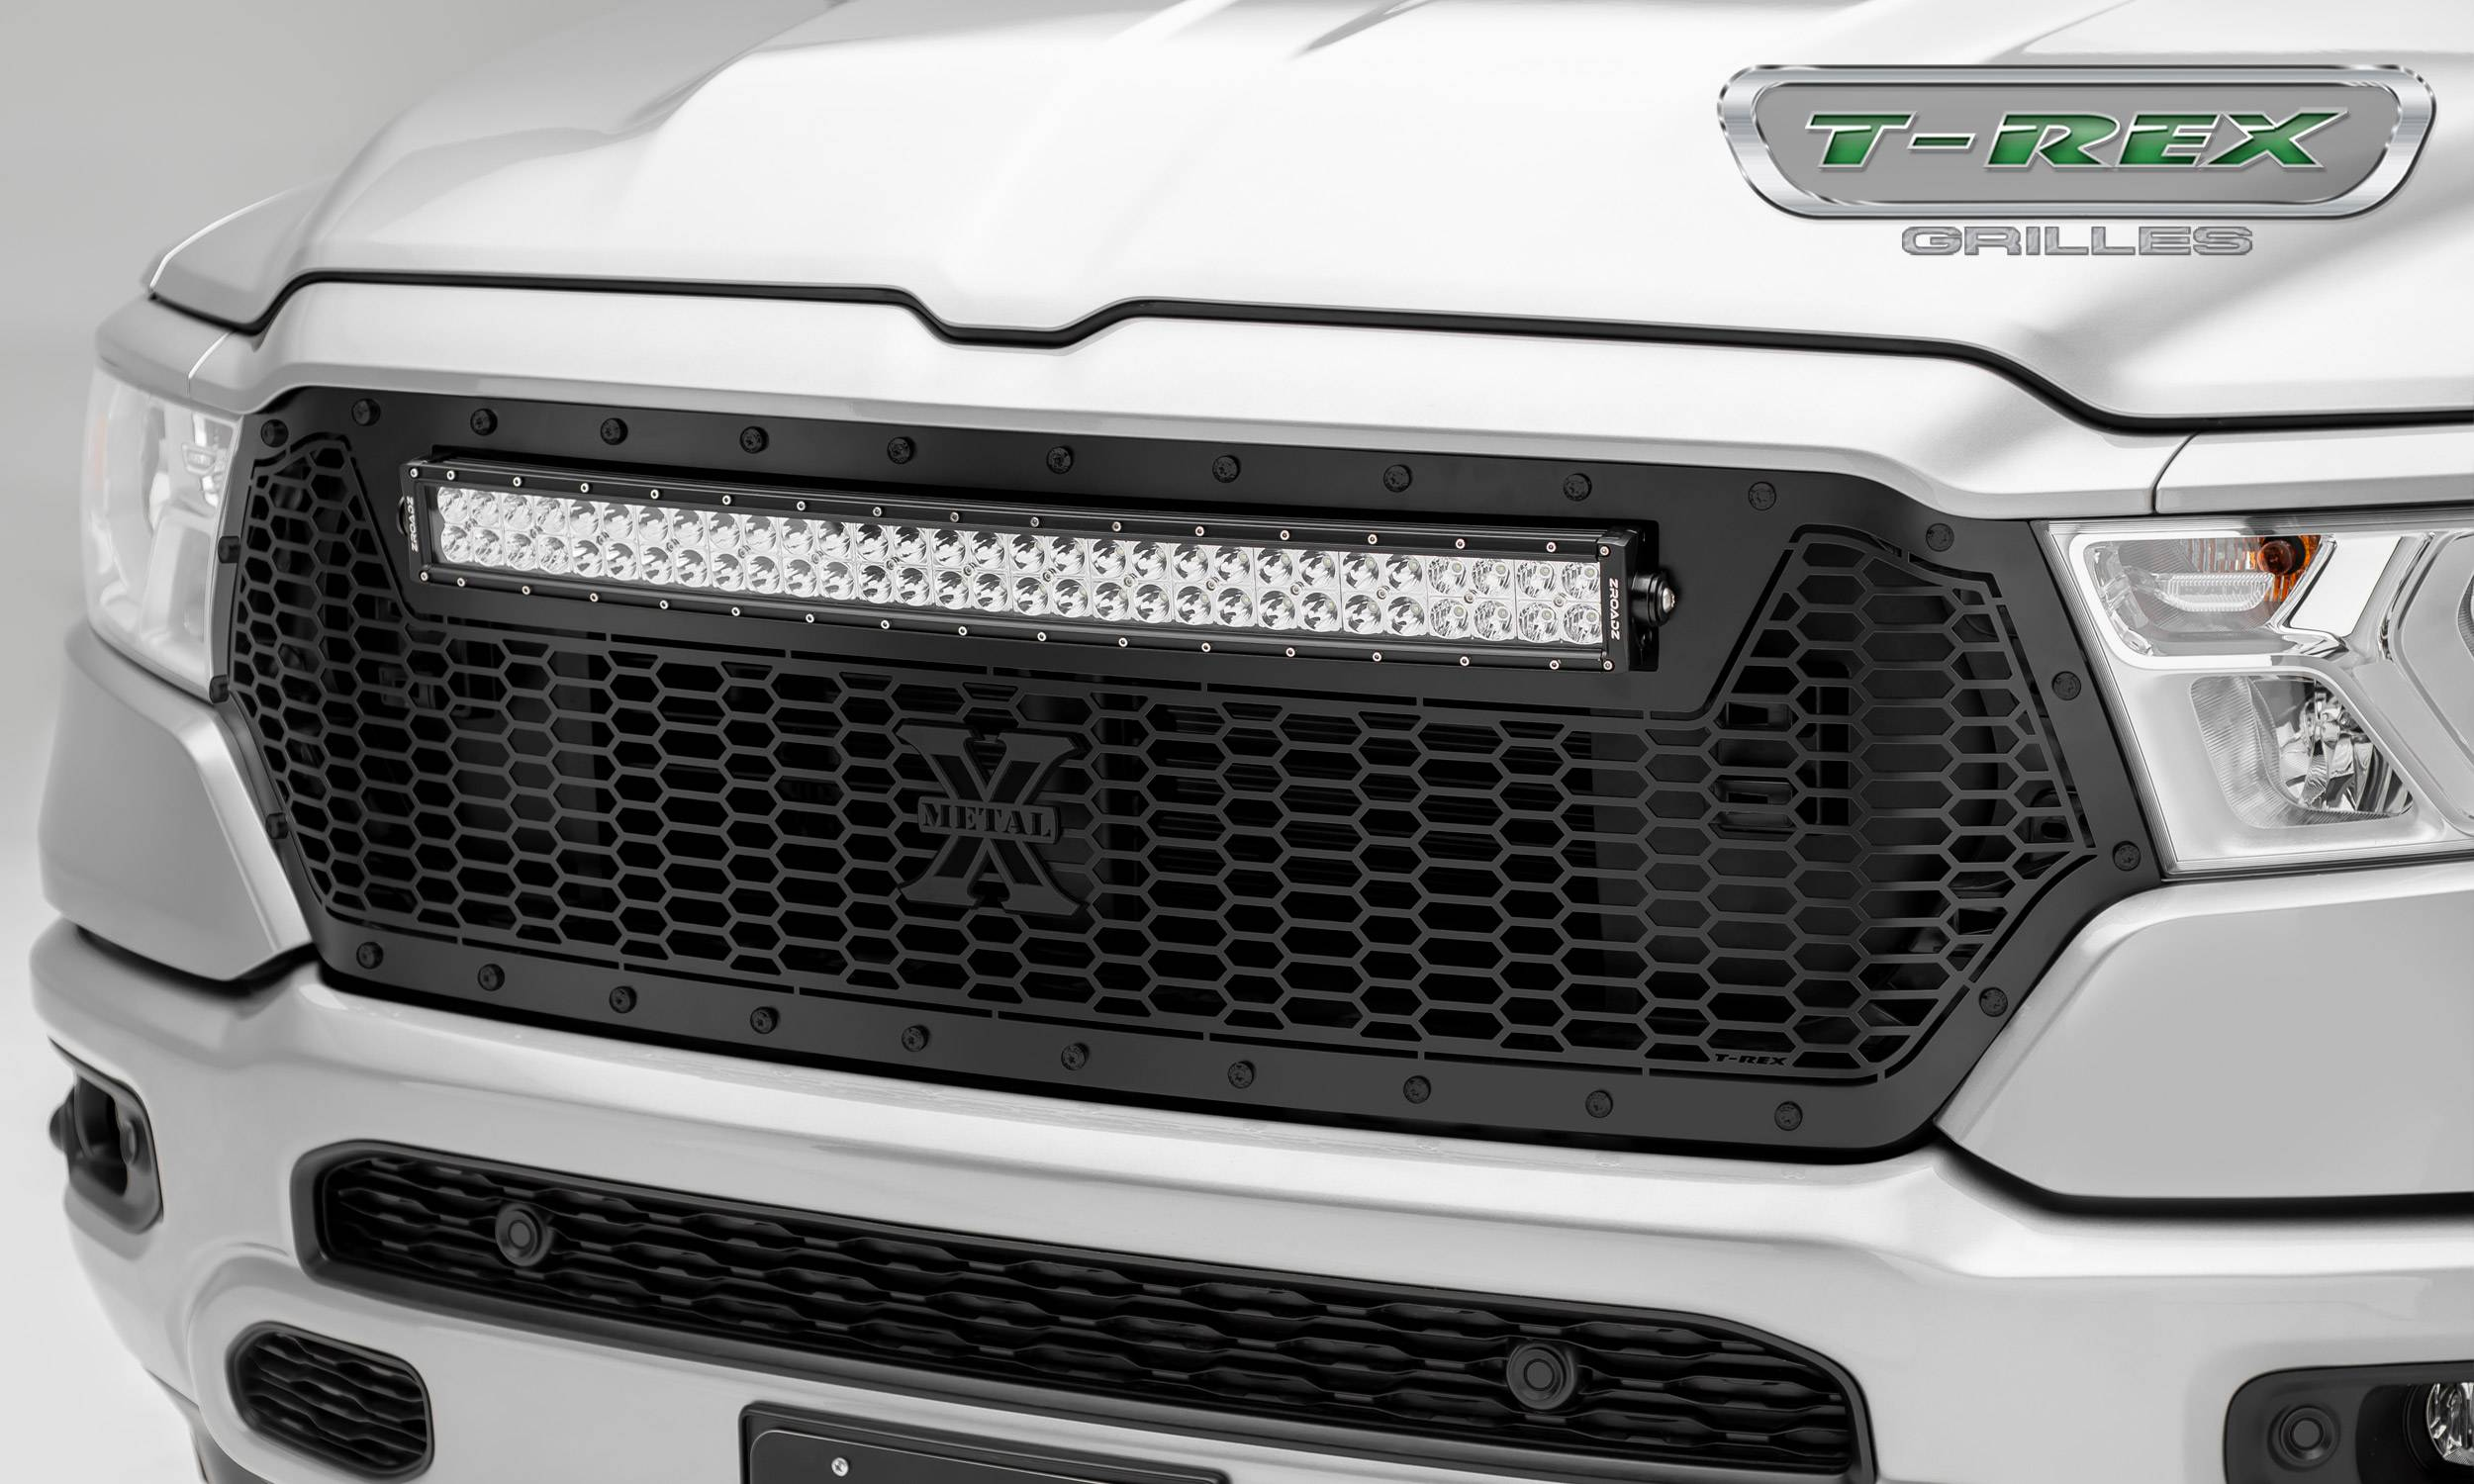 T-REX Grilles - RAM 1500 - Stealth Laser Torch Main Grille Replacement w/ (1) 30 inch LED Light Bar - Laser Cut Repeating Pattern & Black Studs - Pt # 7314651-BR